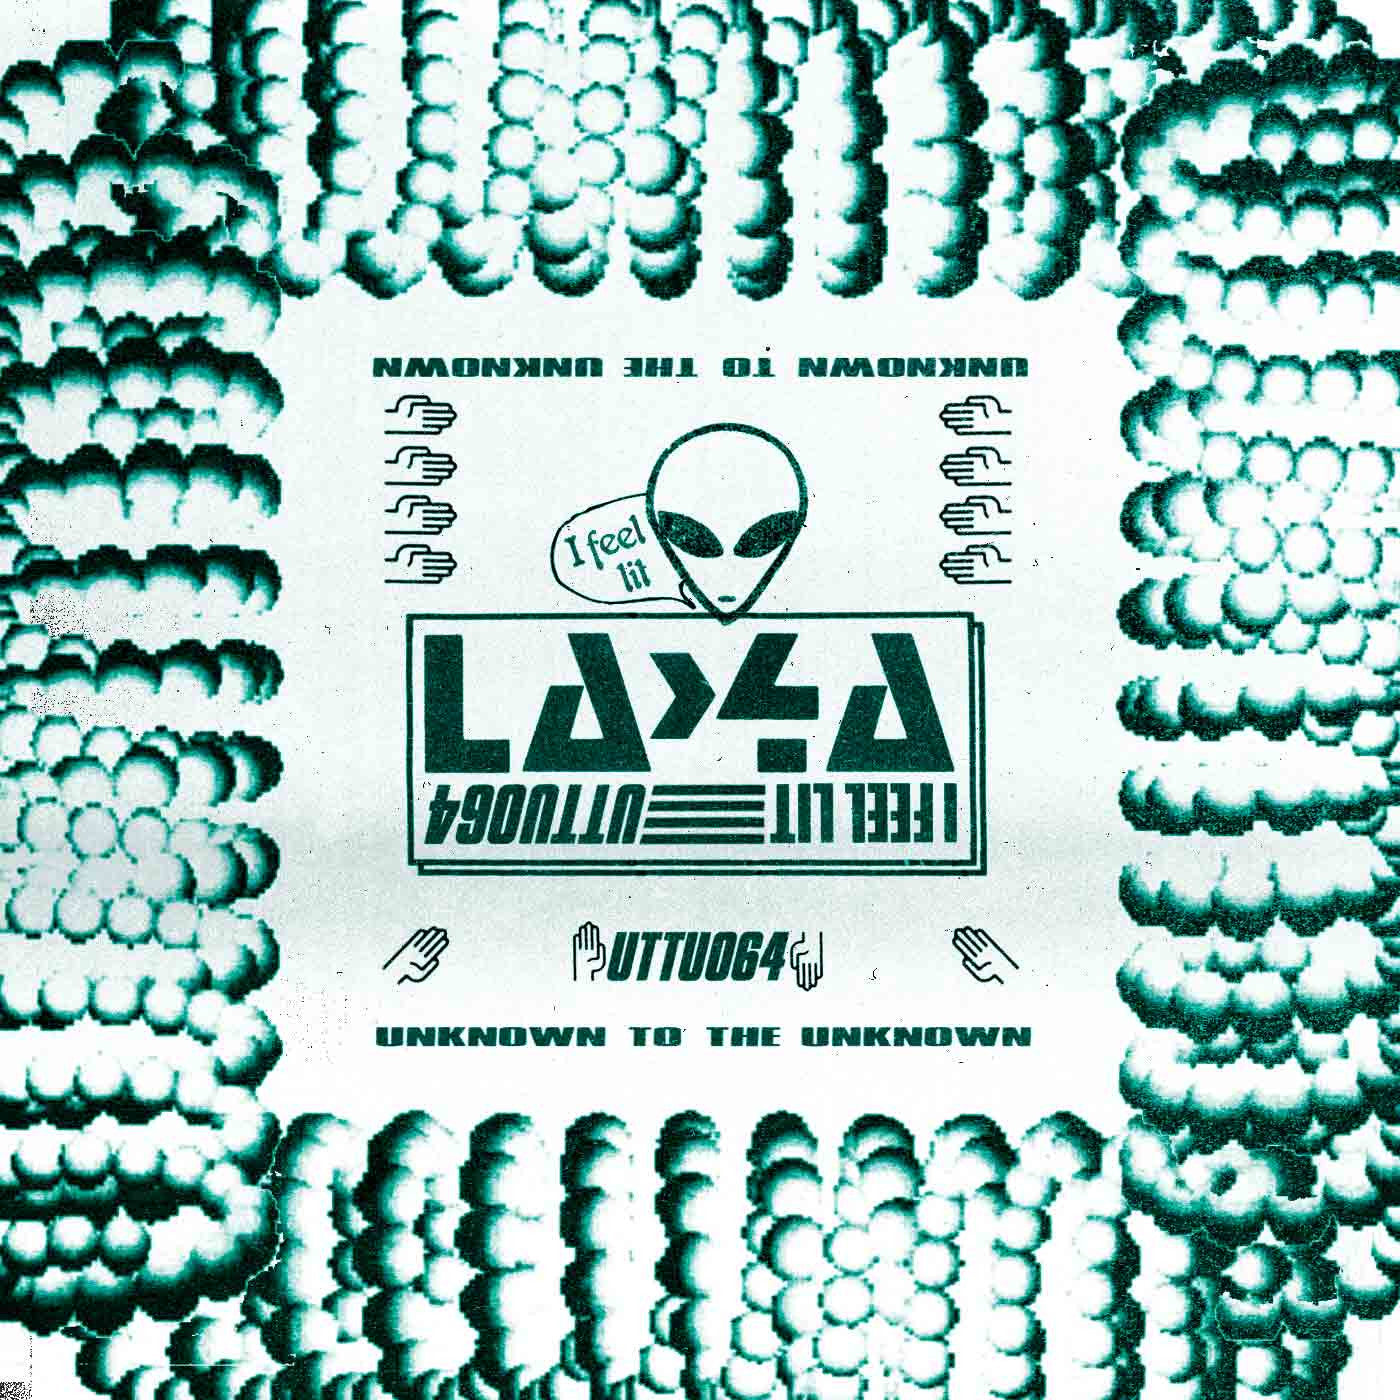 LA-4A - I Feel Lit // Alden Tyrell Remix , Vinyl - Unknown To The Unknown, Unearthed Sounds